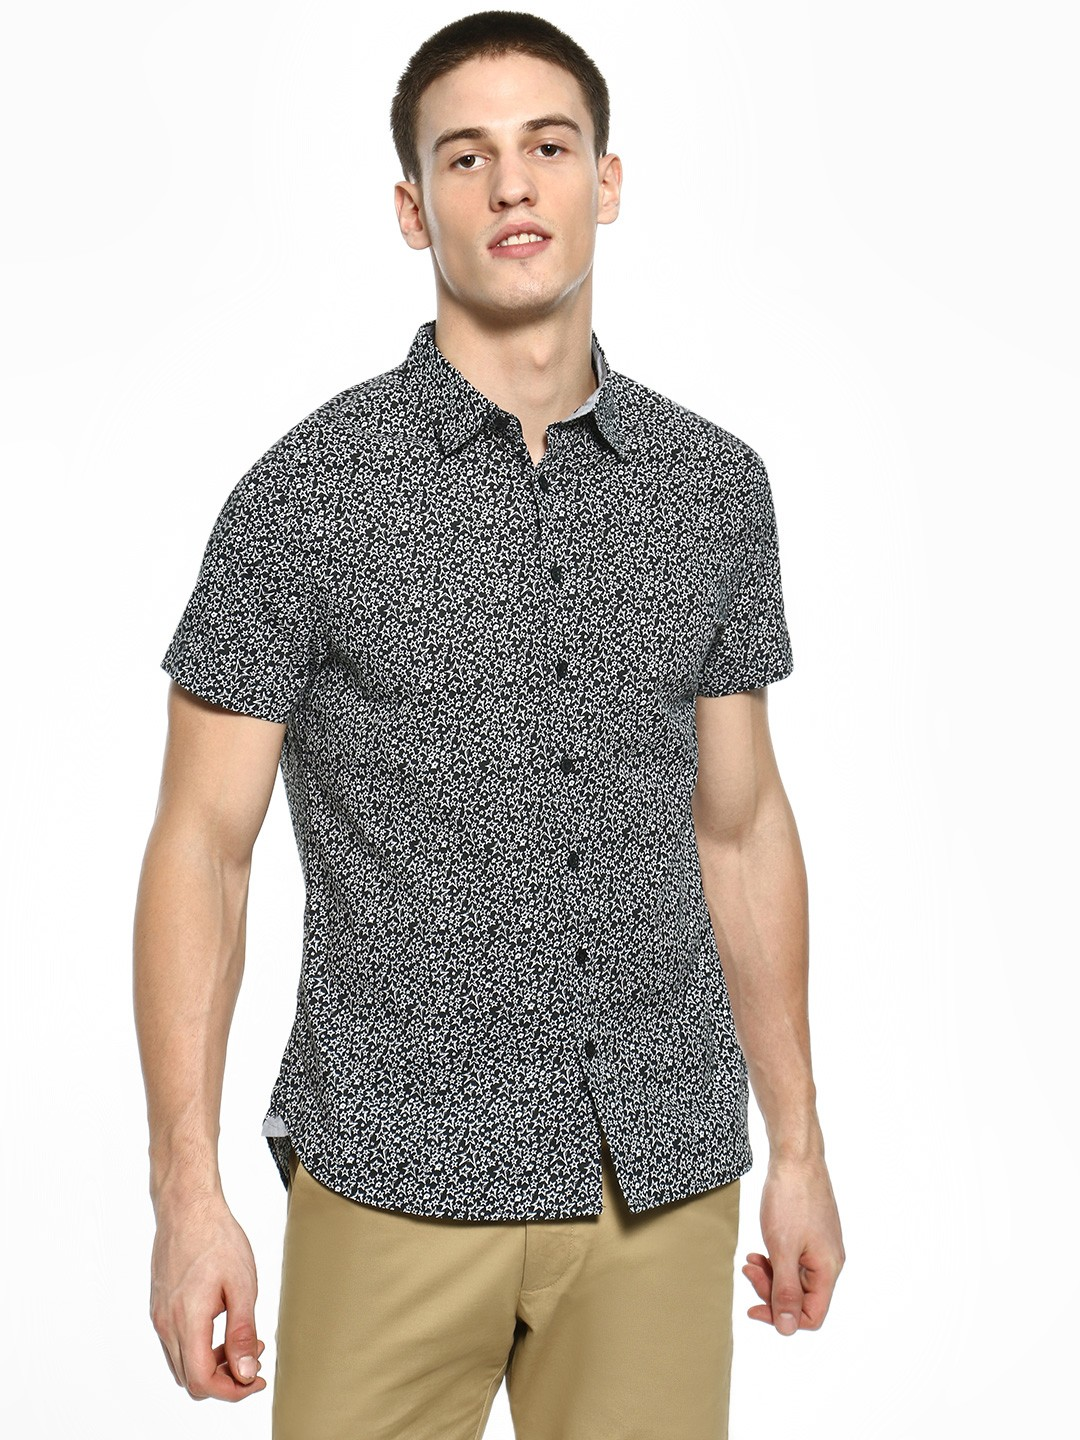 Kenneth Cole Black All Over Star Print Shirt 1